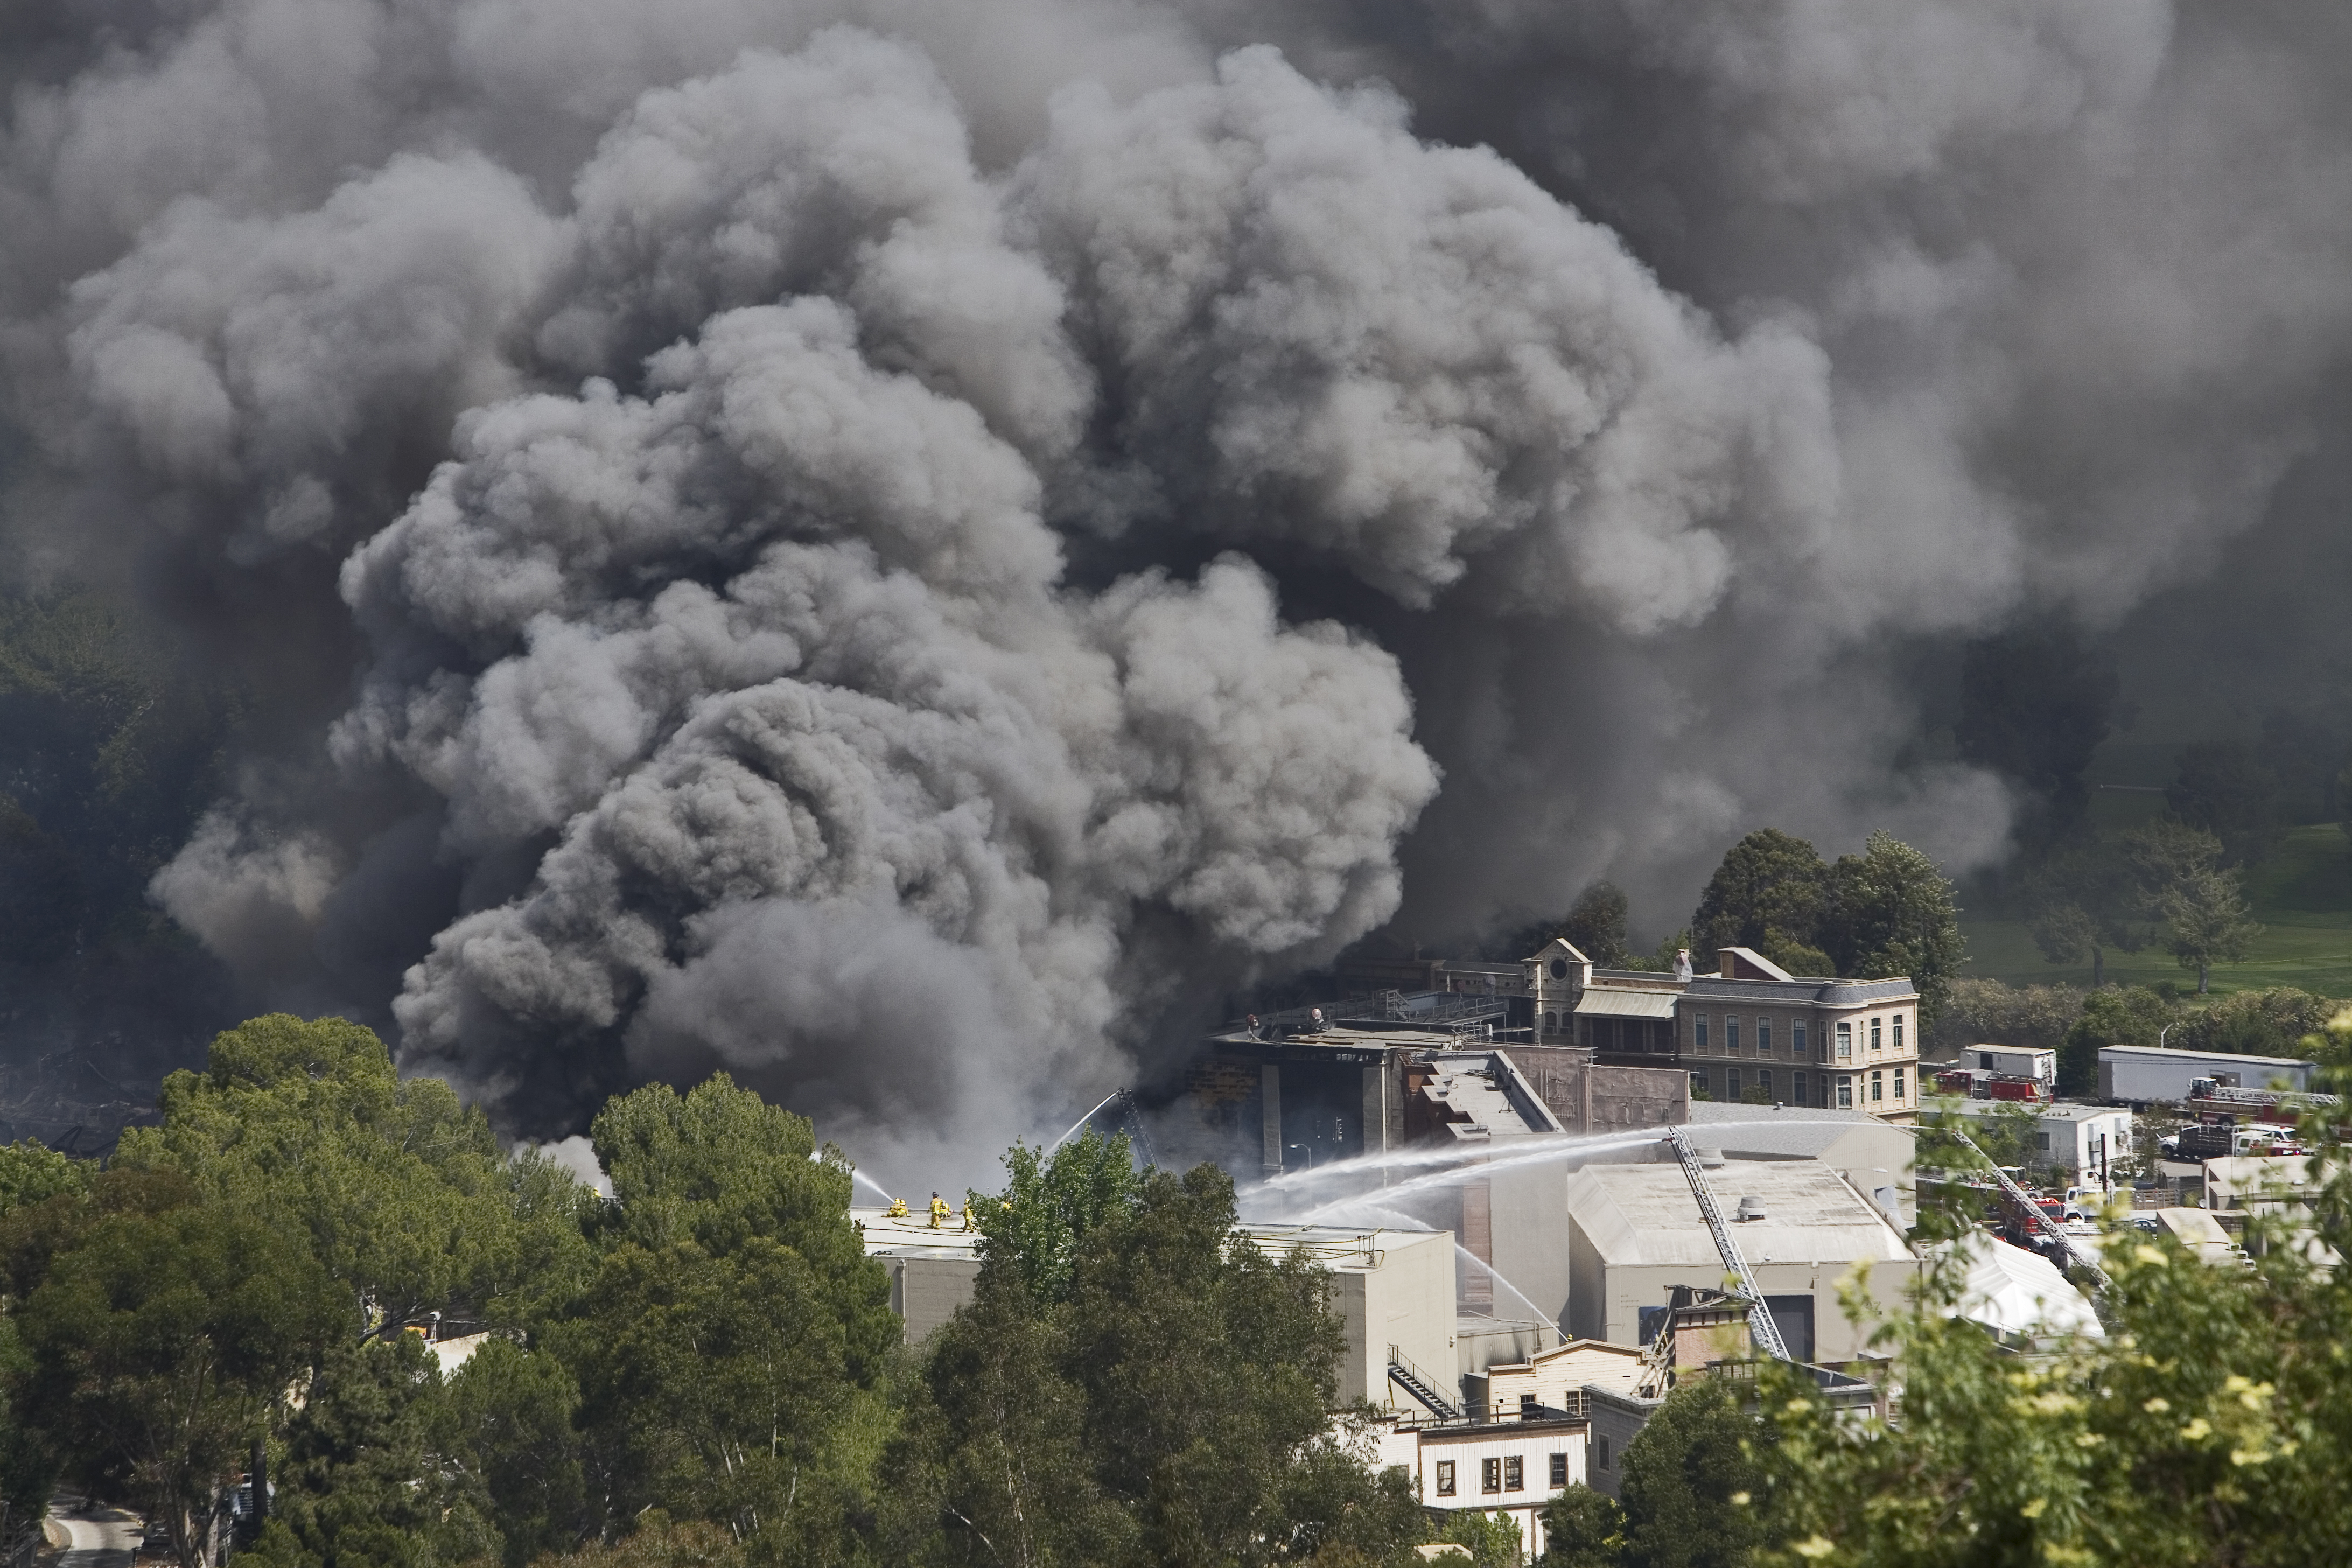 Fire at Universal Studios in 2008